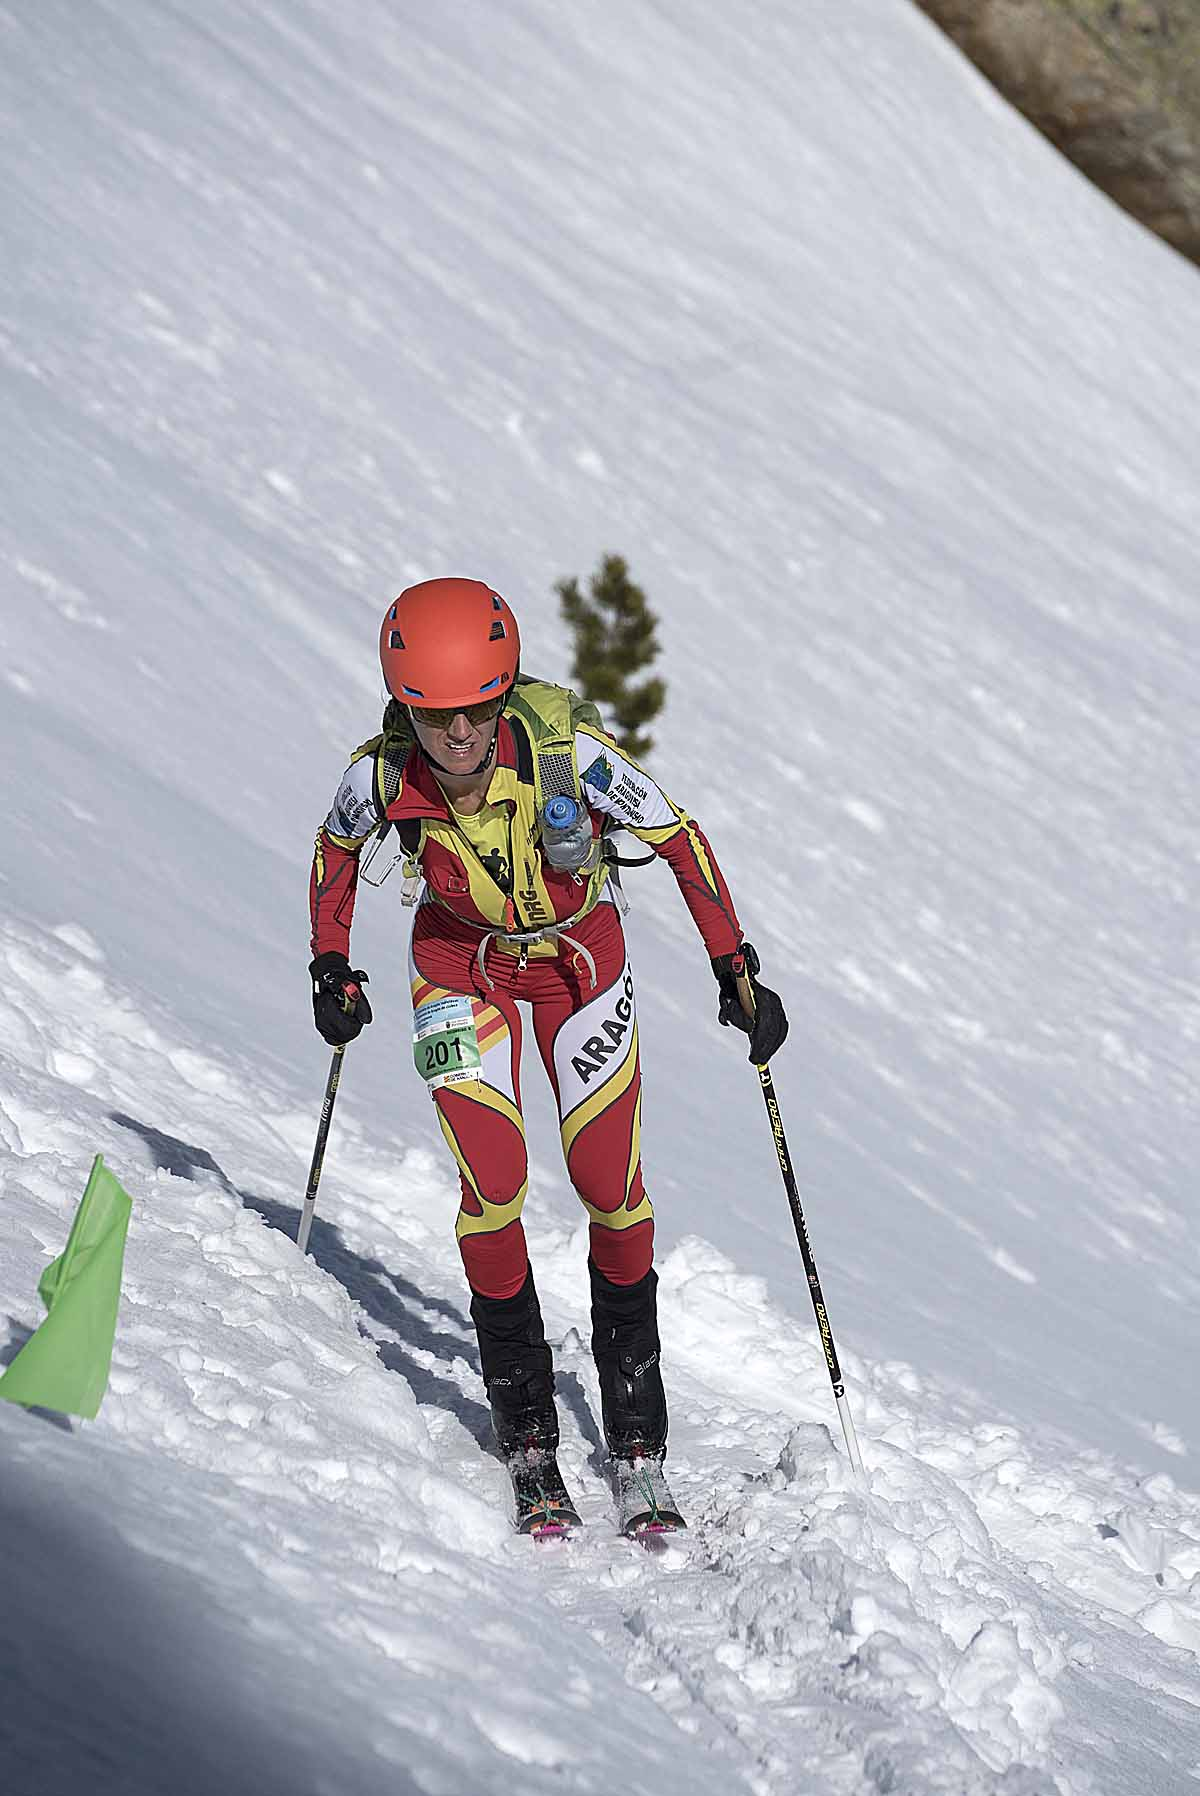 DSC00353 ALEJANDRO PEÑA TRAVESIA CLUB PIRINEOS 2019 copia